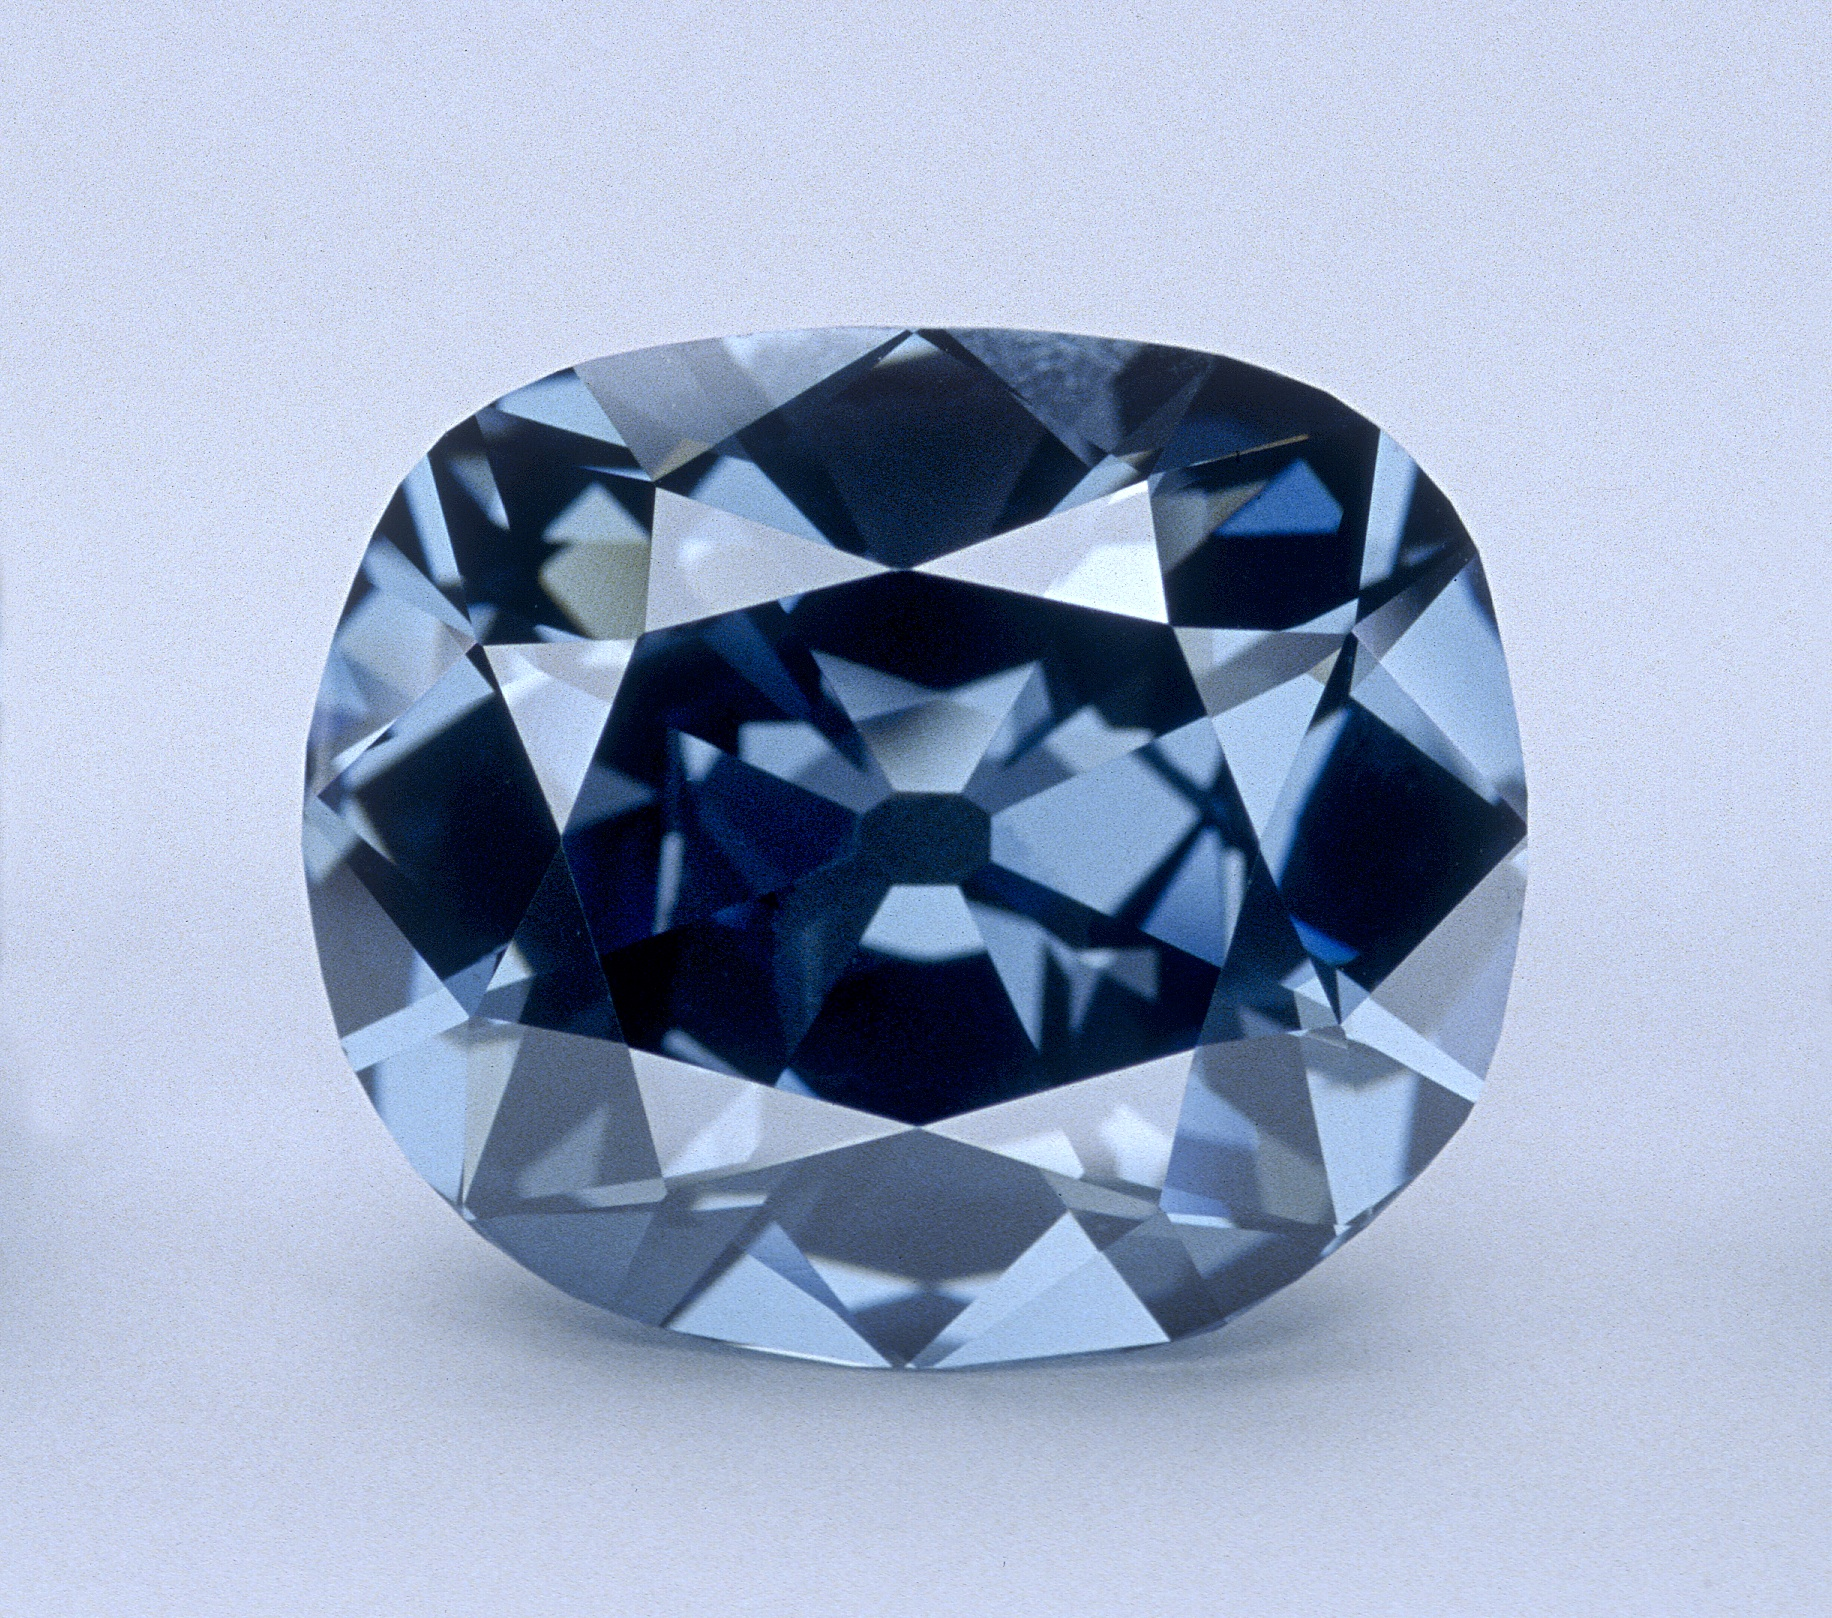 group releases at international s st star paragon wealth christies blue news ring christie notes recent cnw colored diamonds diamond auction inc management